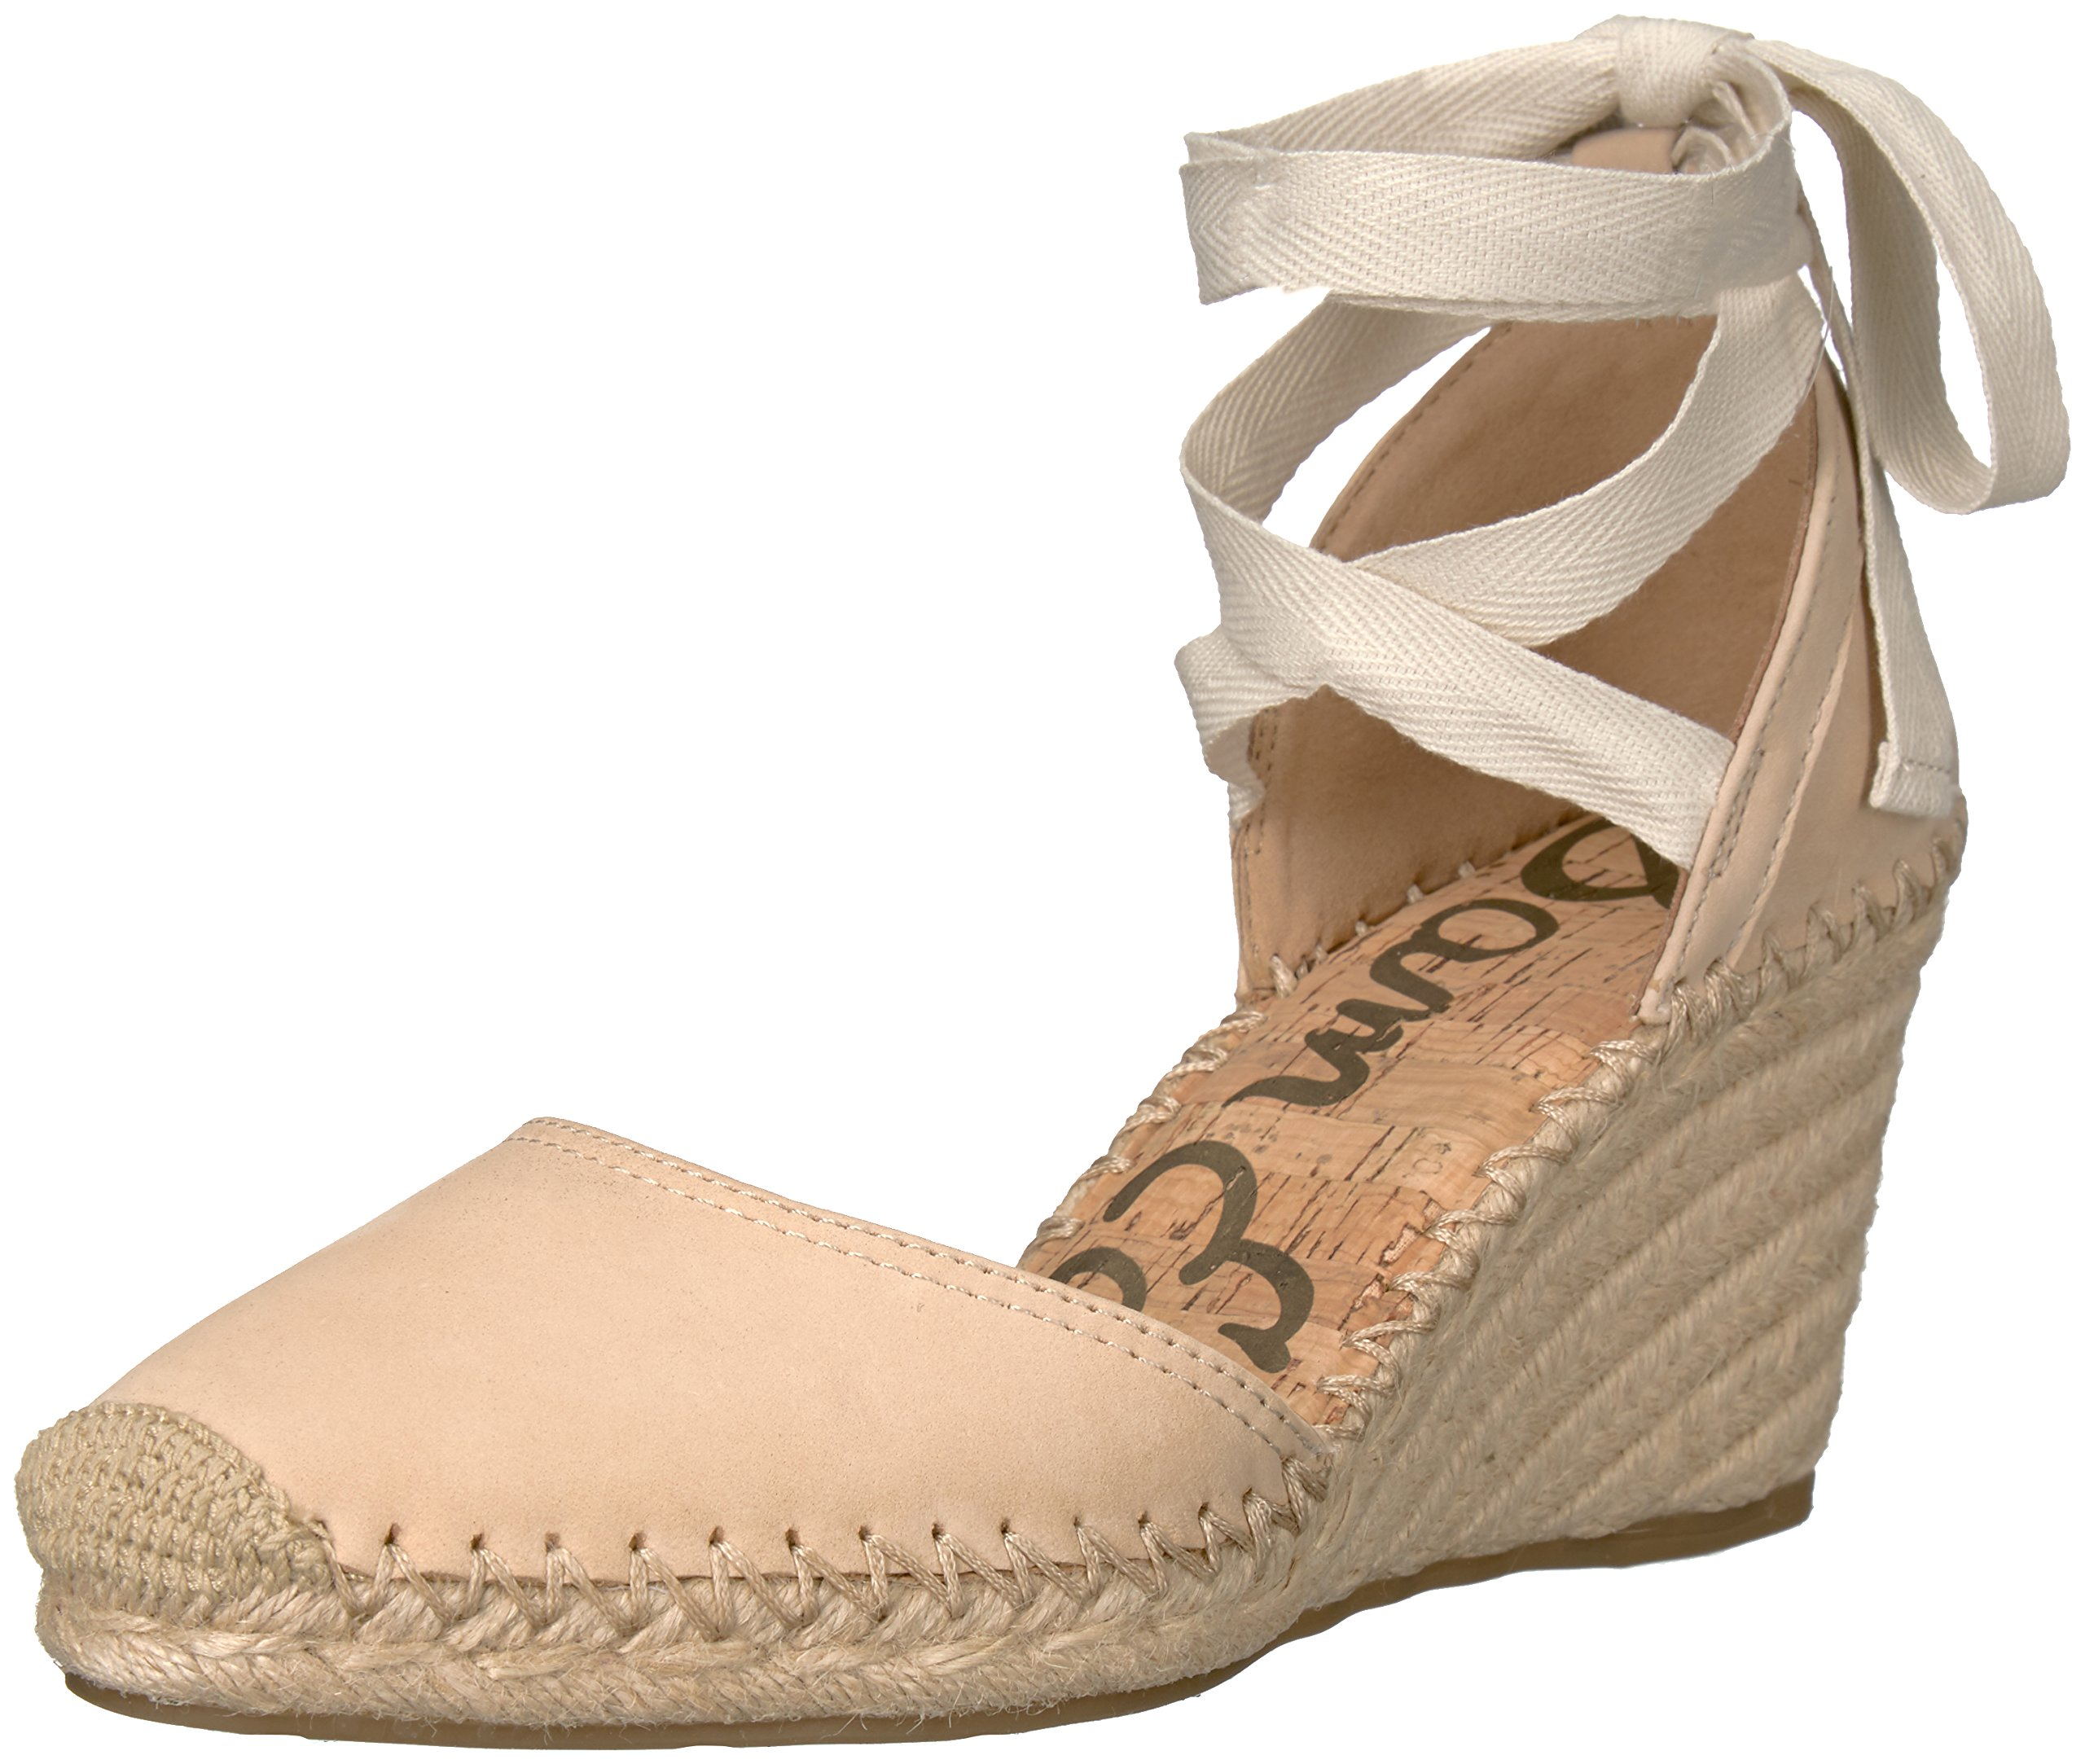 Sam Edelman Women's Patsy, Summer Sand Nubuck Leather, 8 M US